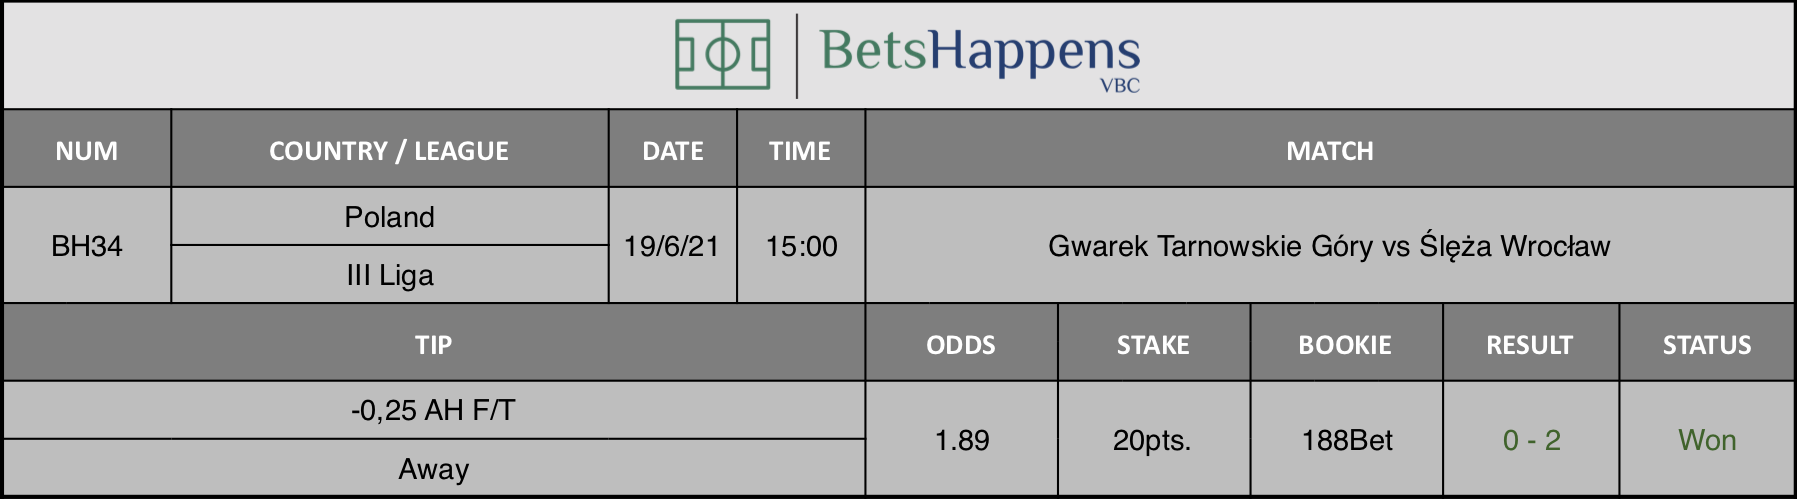 Results of our tip for the Gwarek Tarnowskie Góry vs Ślęża Wrocław Match -0,25 AH F/T Away is recommended.